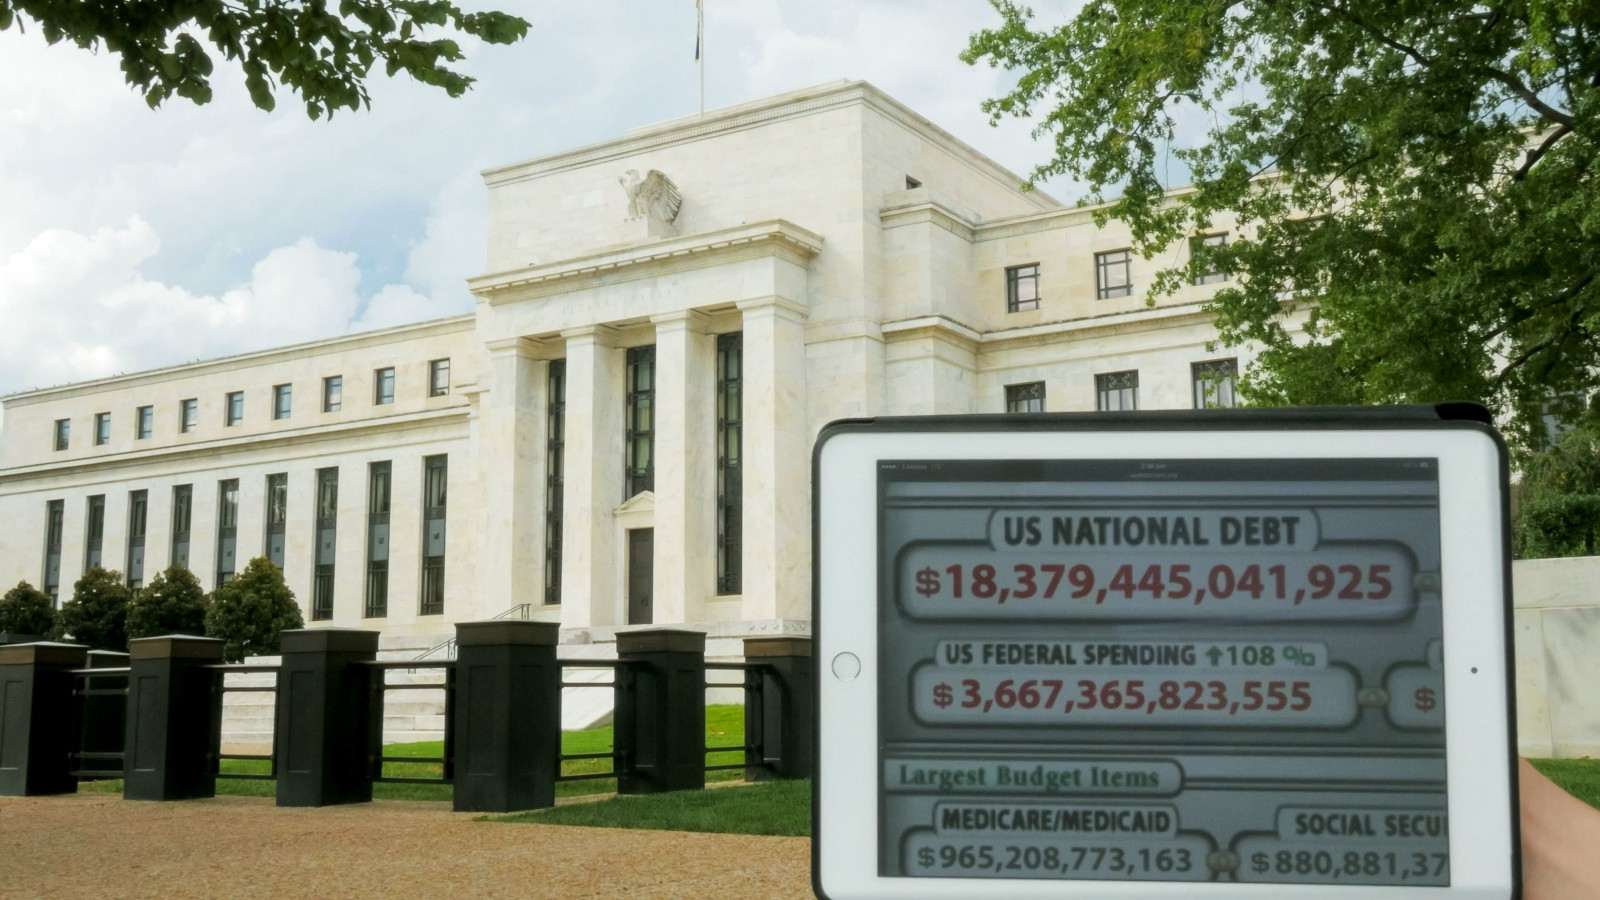 National Debt Clock and federal spending information overlayed in front of a government building